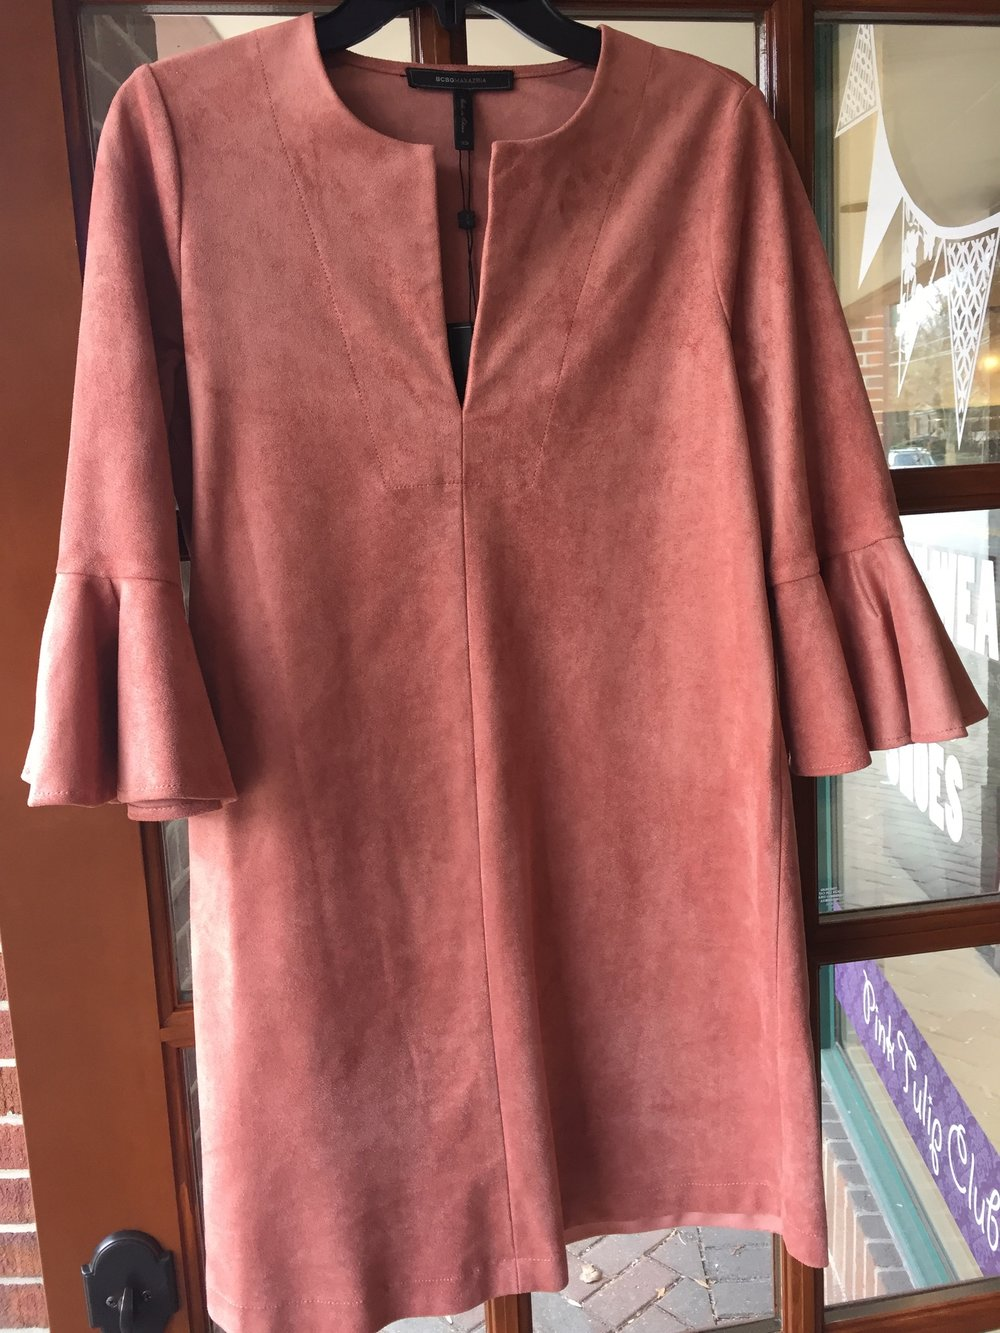 BCBG Max Azria Suede Dress $198